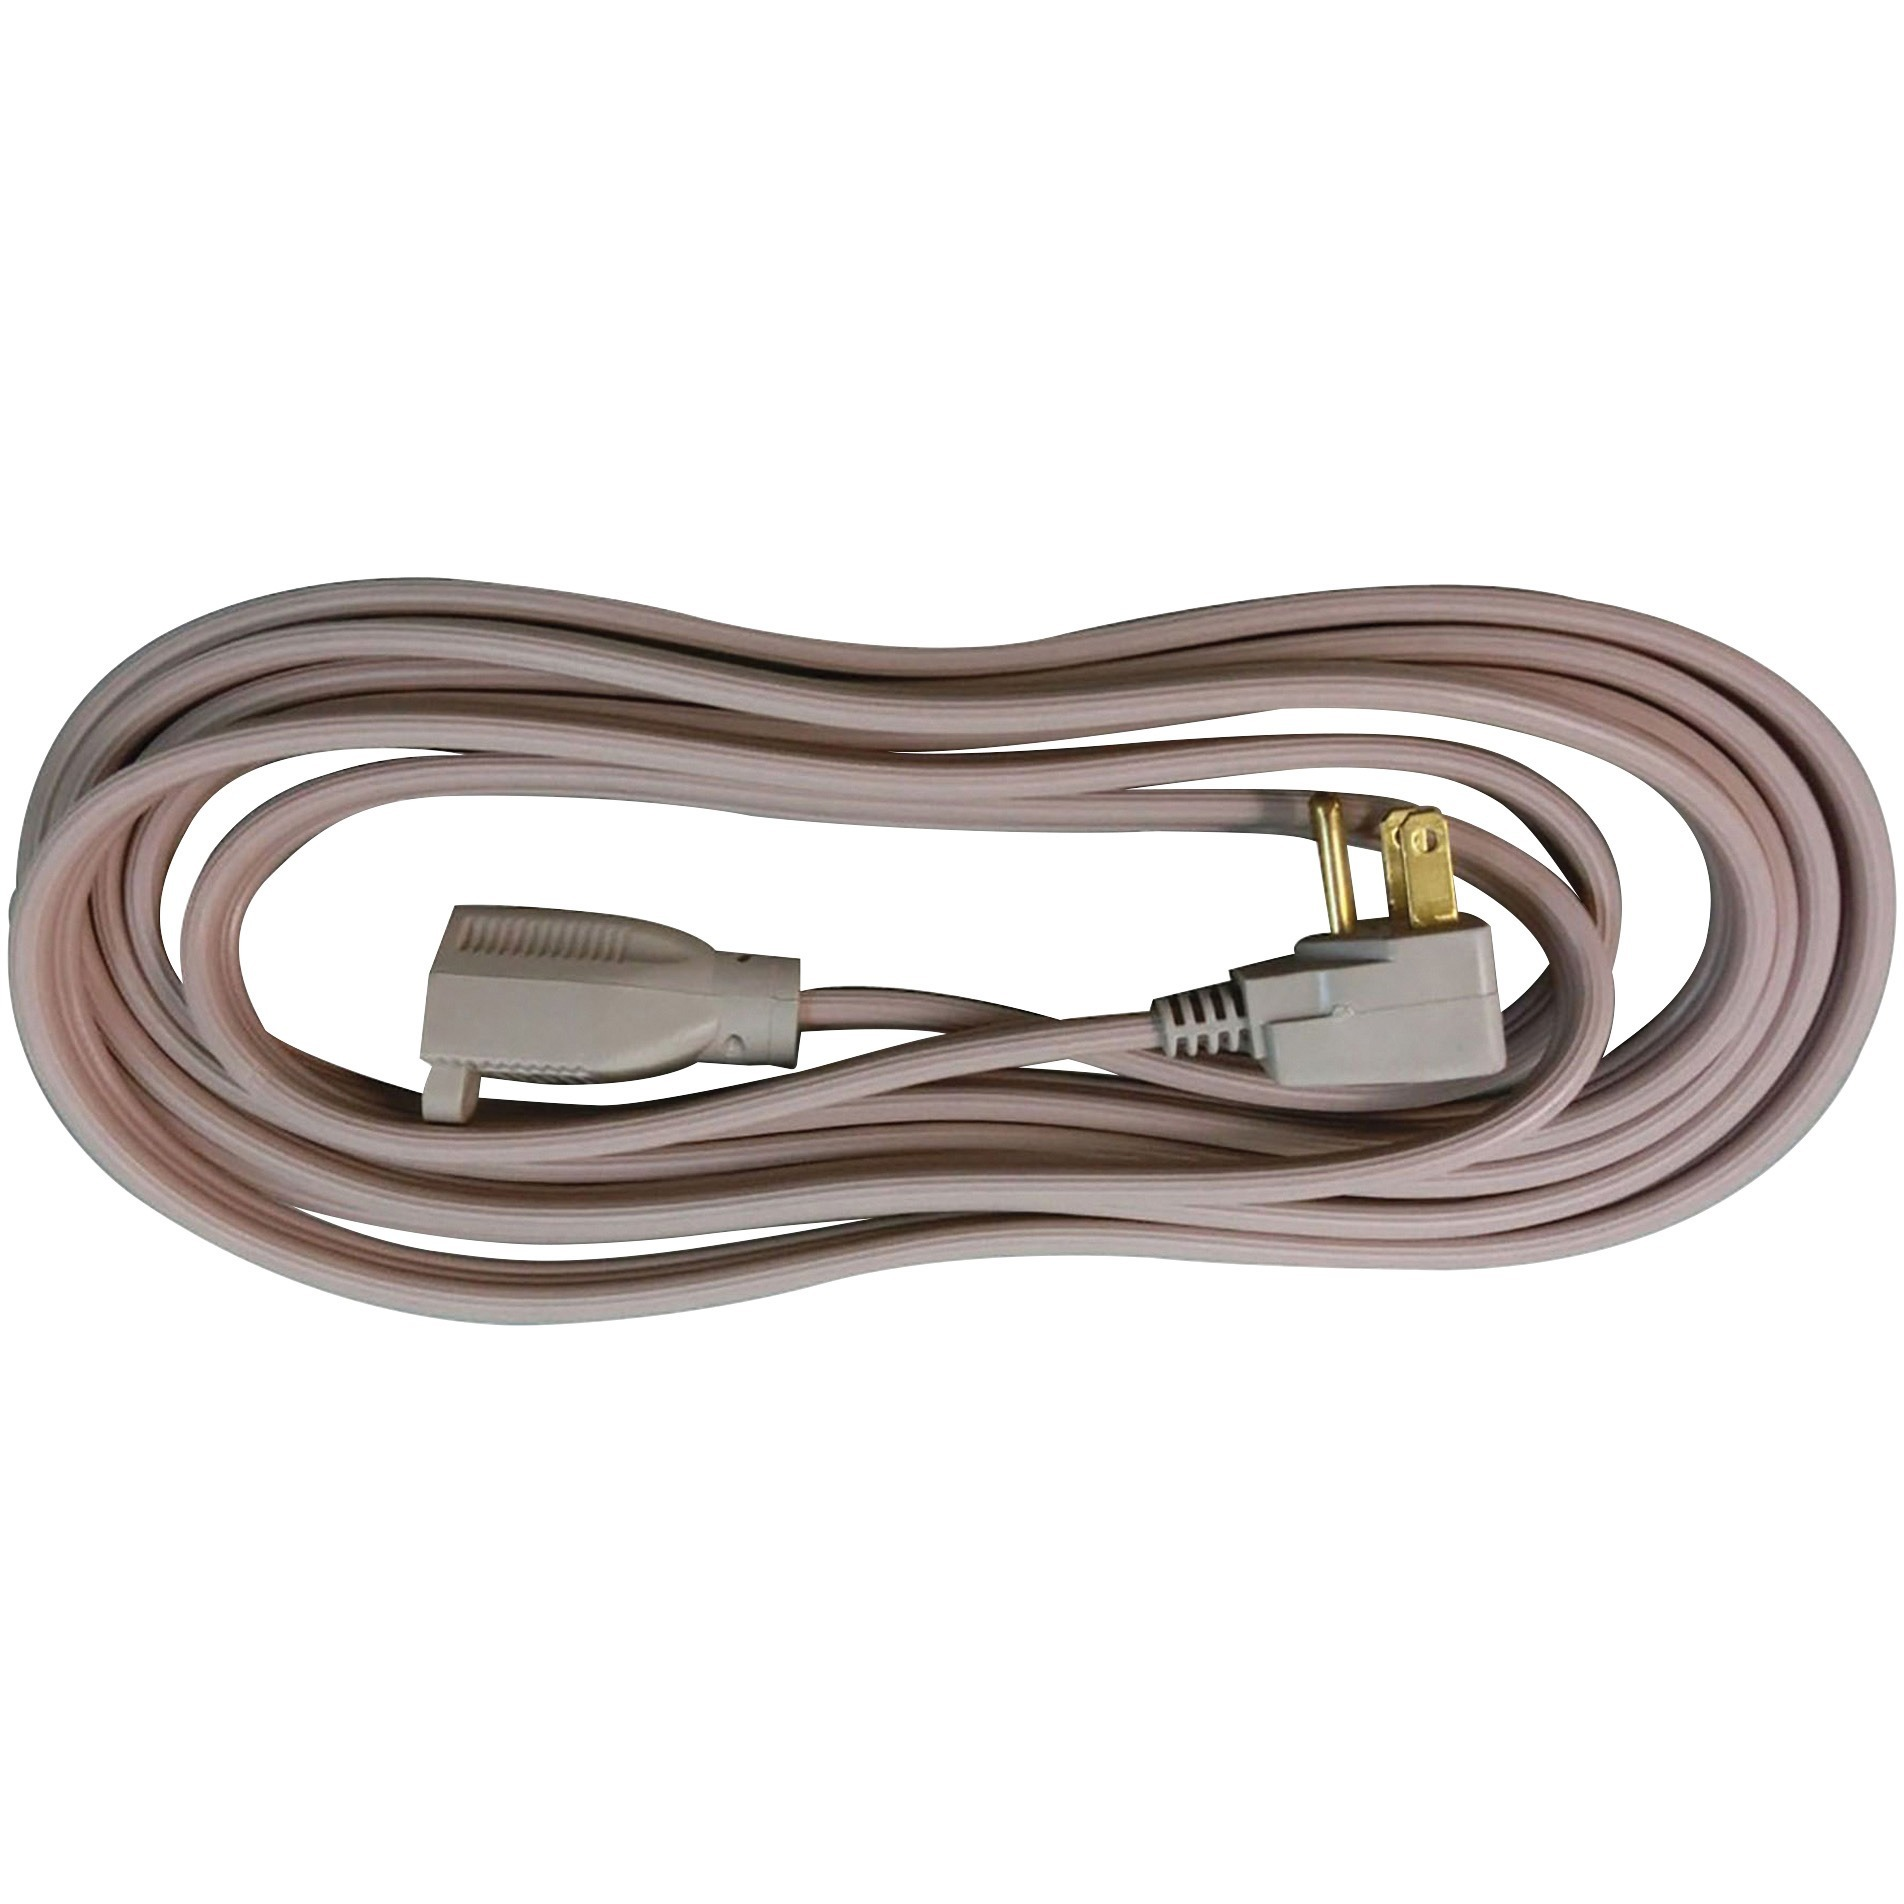 Compucessory Heavy Duty Indoor Extension Cord, Beige